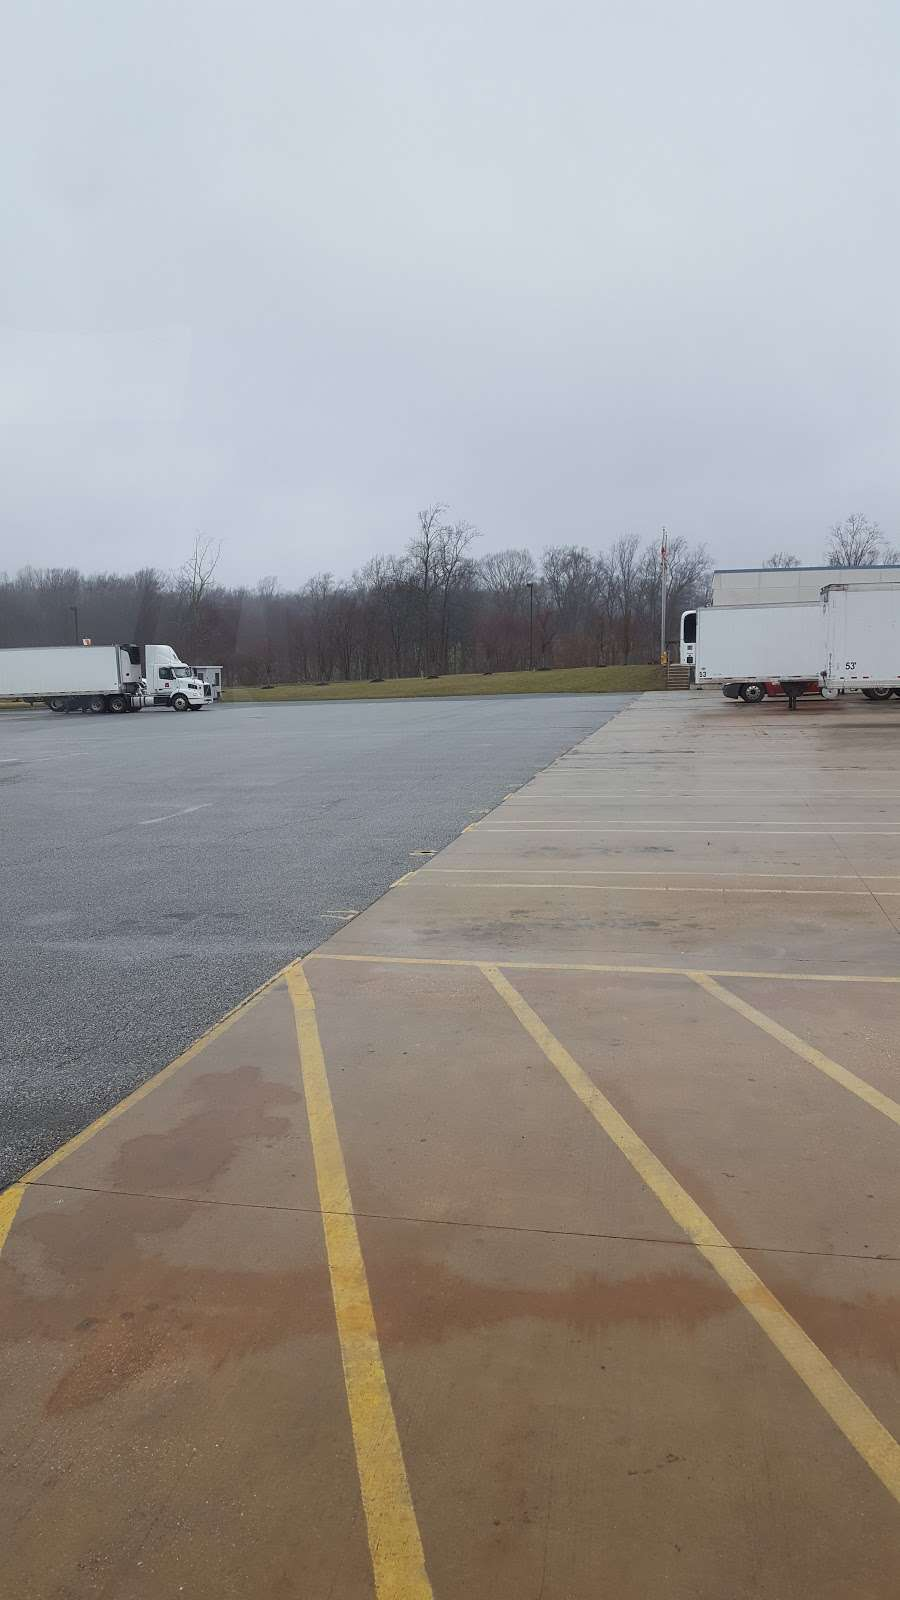 Perryville Cold Storage - storage    Photo 10 of 10   Address: 300 Belvidere Rd, Perryville, MD 21903, USA   Phone: (410) 642-2499